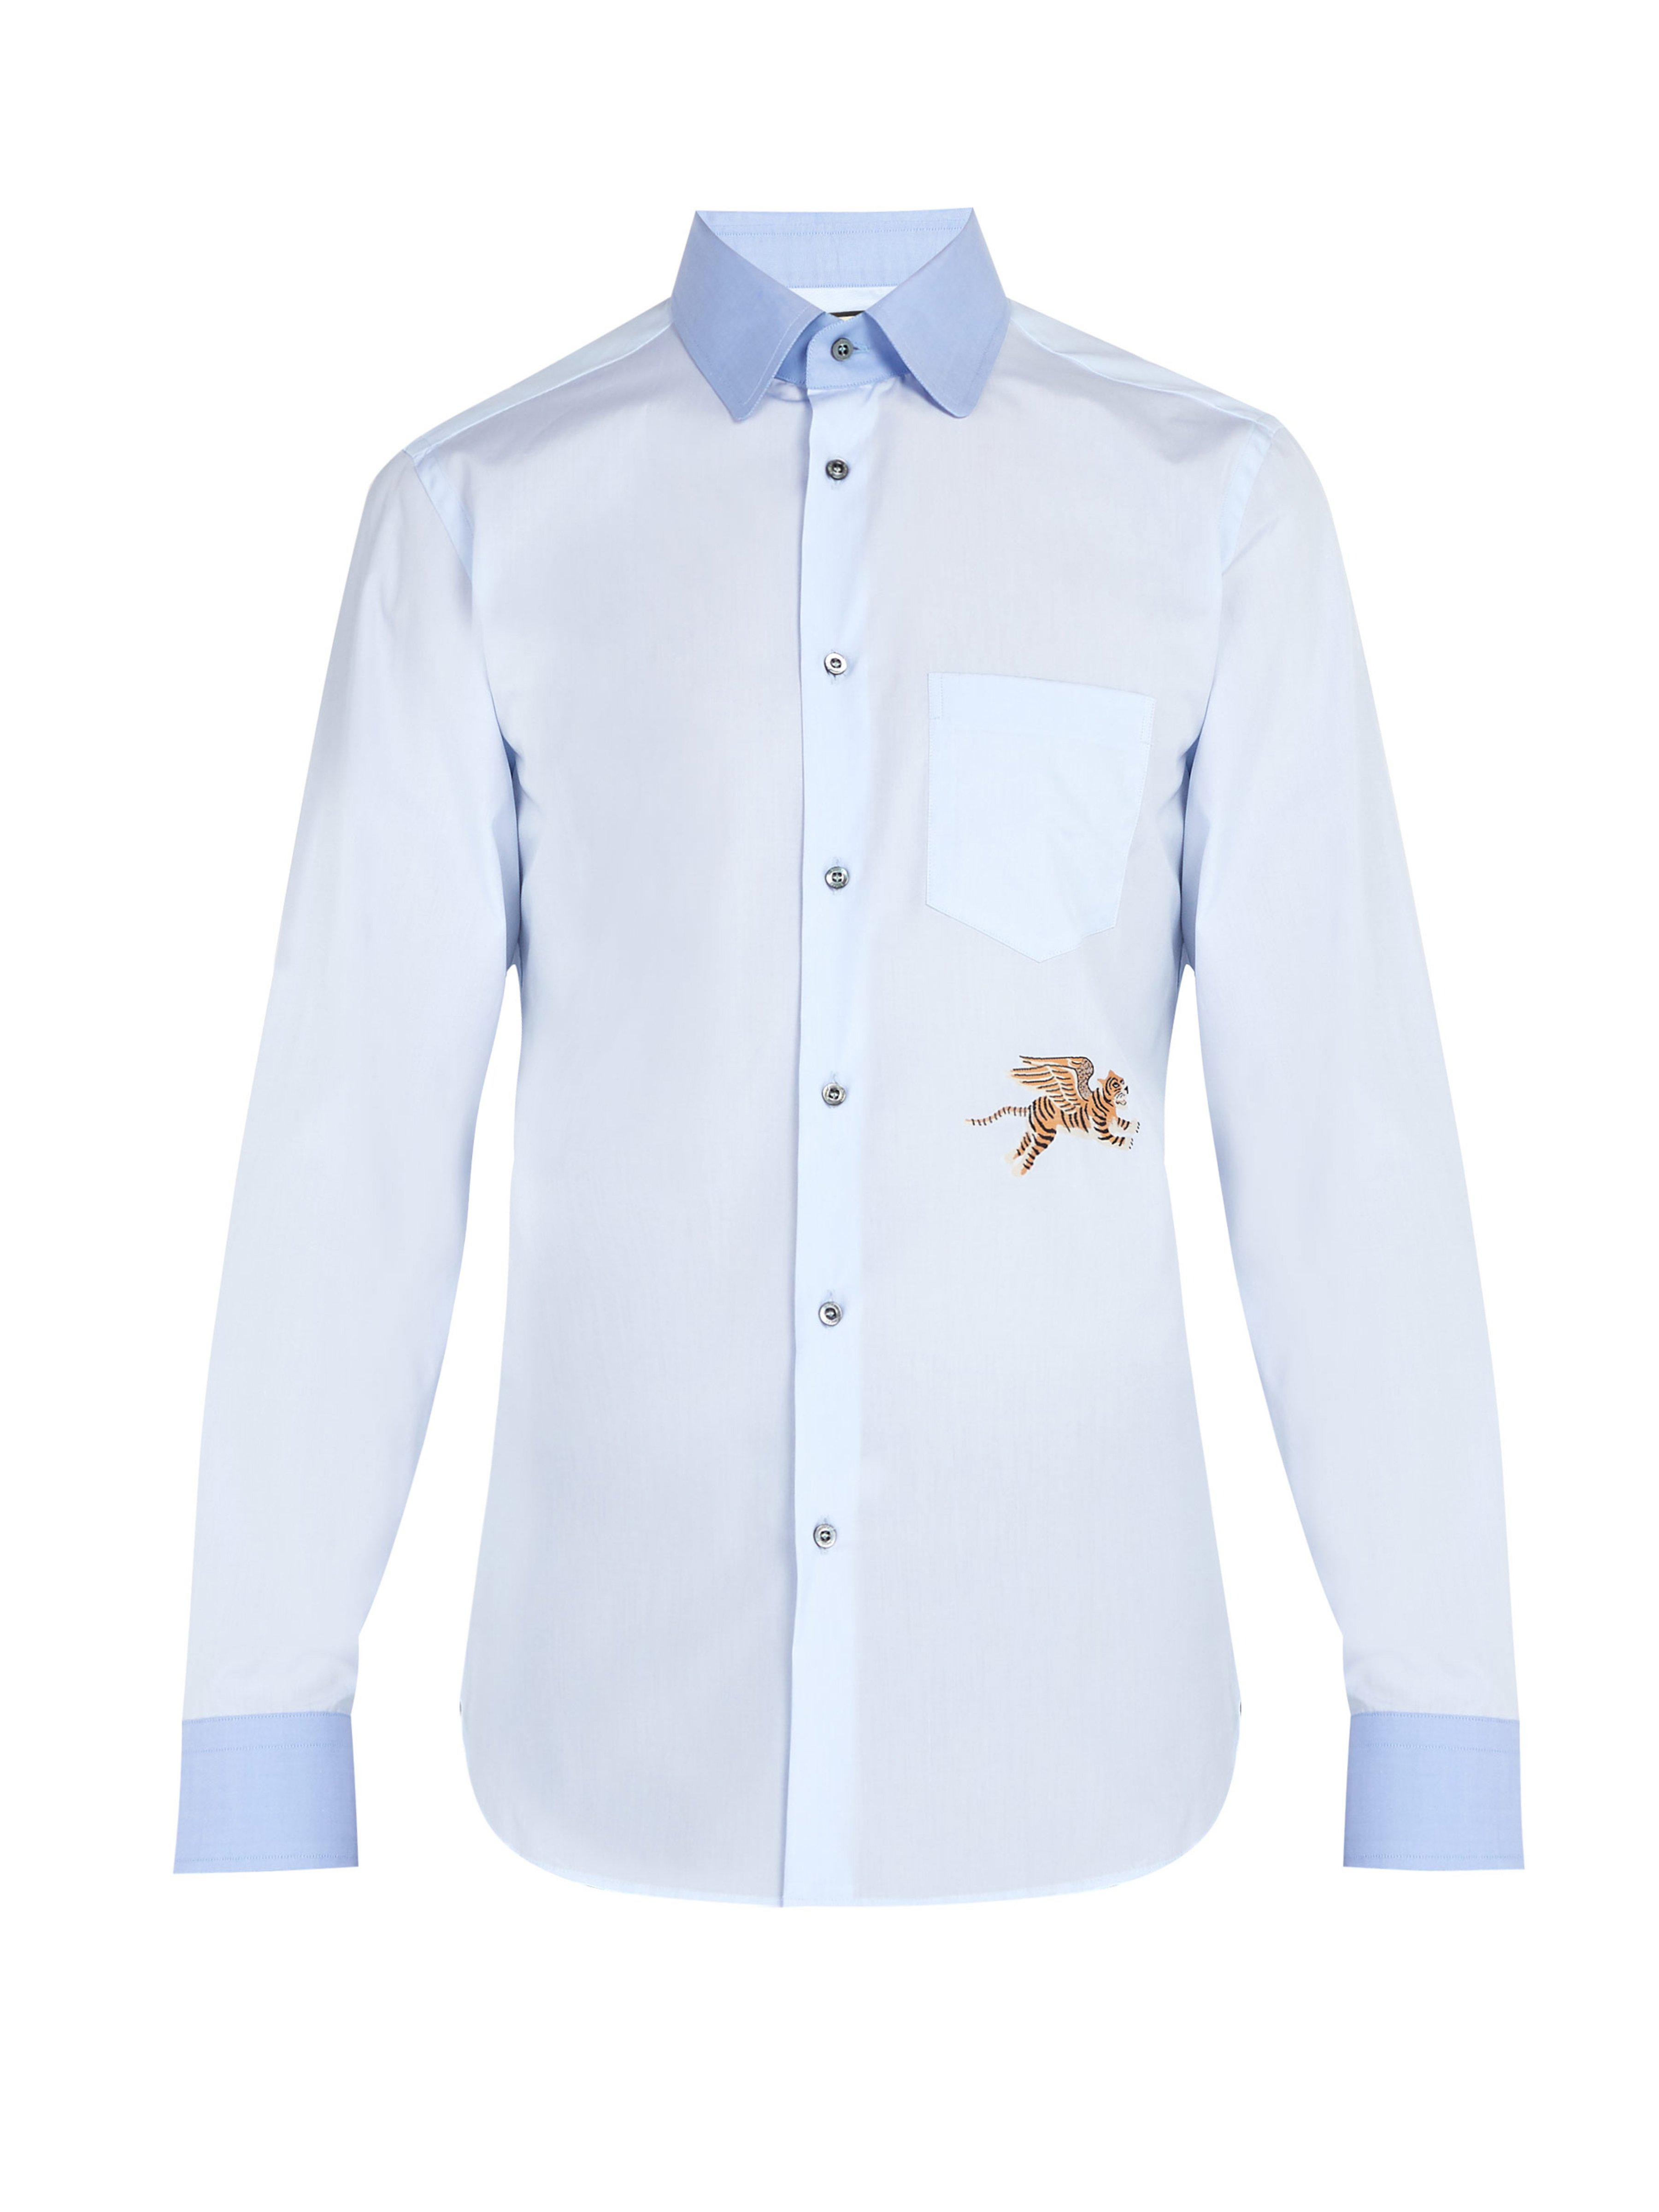 bd5aa856 Gucci Flying Tiger Cotton Poplin Shirt in Blue for Men - Lyst